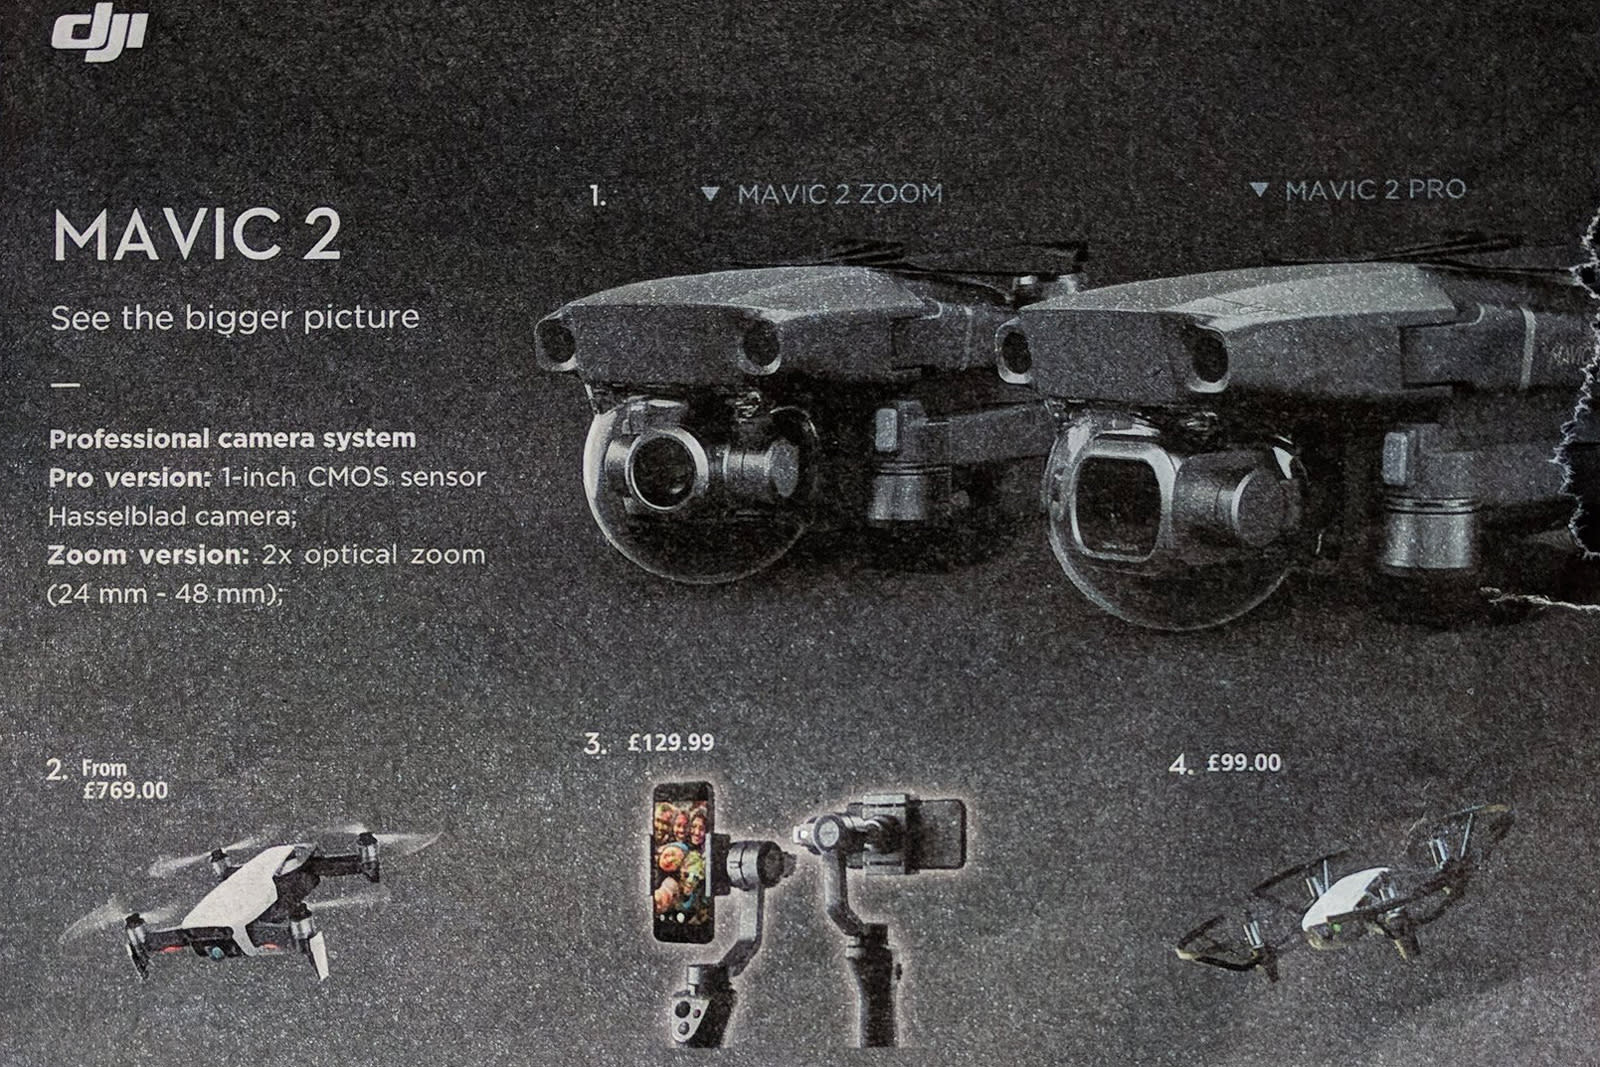 b00d6a03953 DJI's leaked Mavic 2 drone will come in 'Pro' and 'Zoom' versions